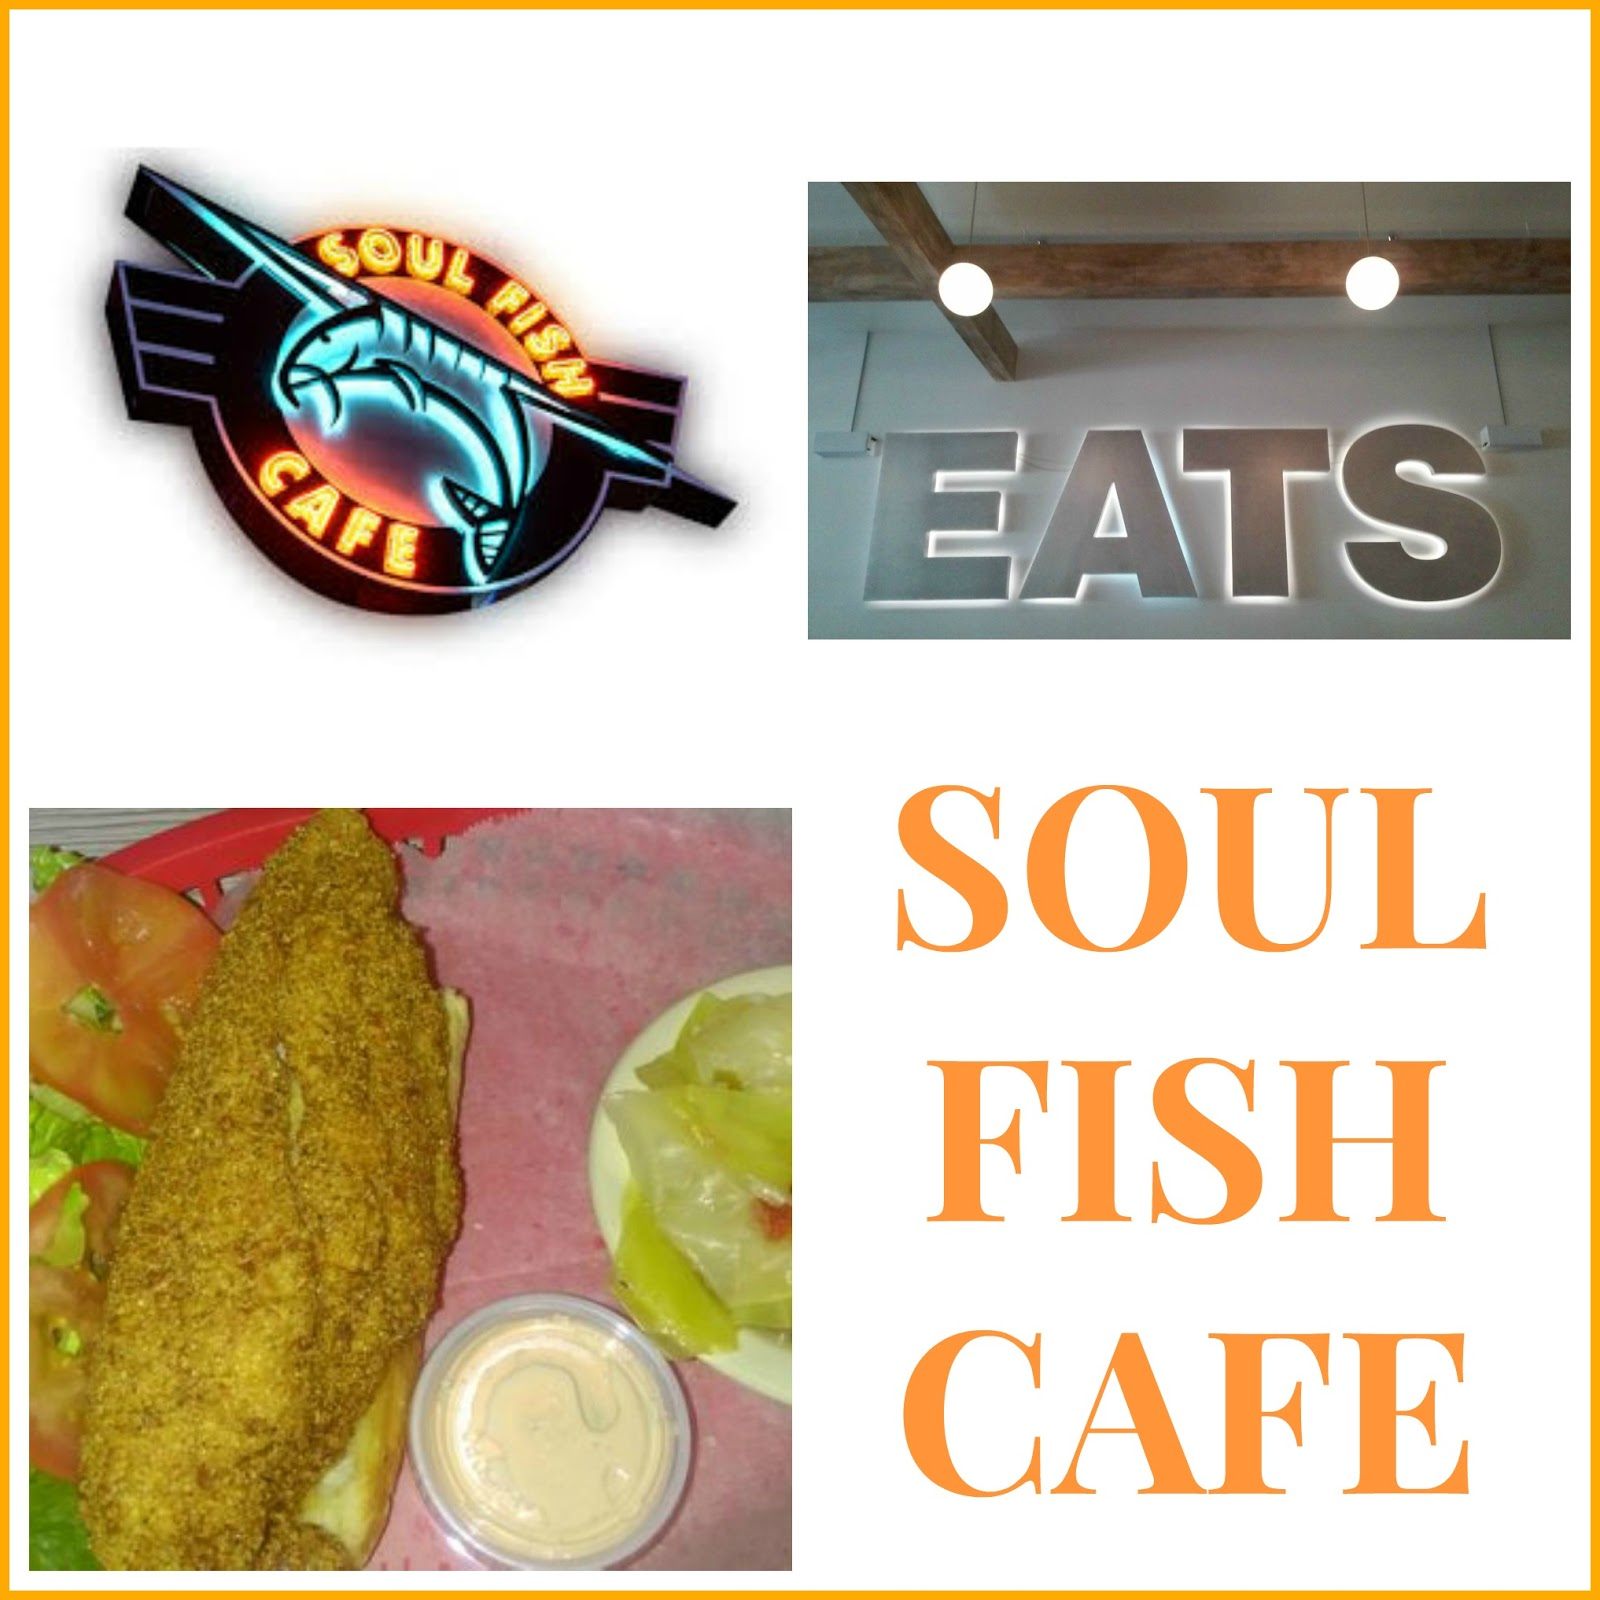 Lunching at soul fish cafe 39 for Soul fish cafe